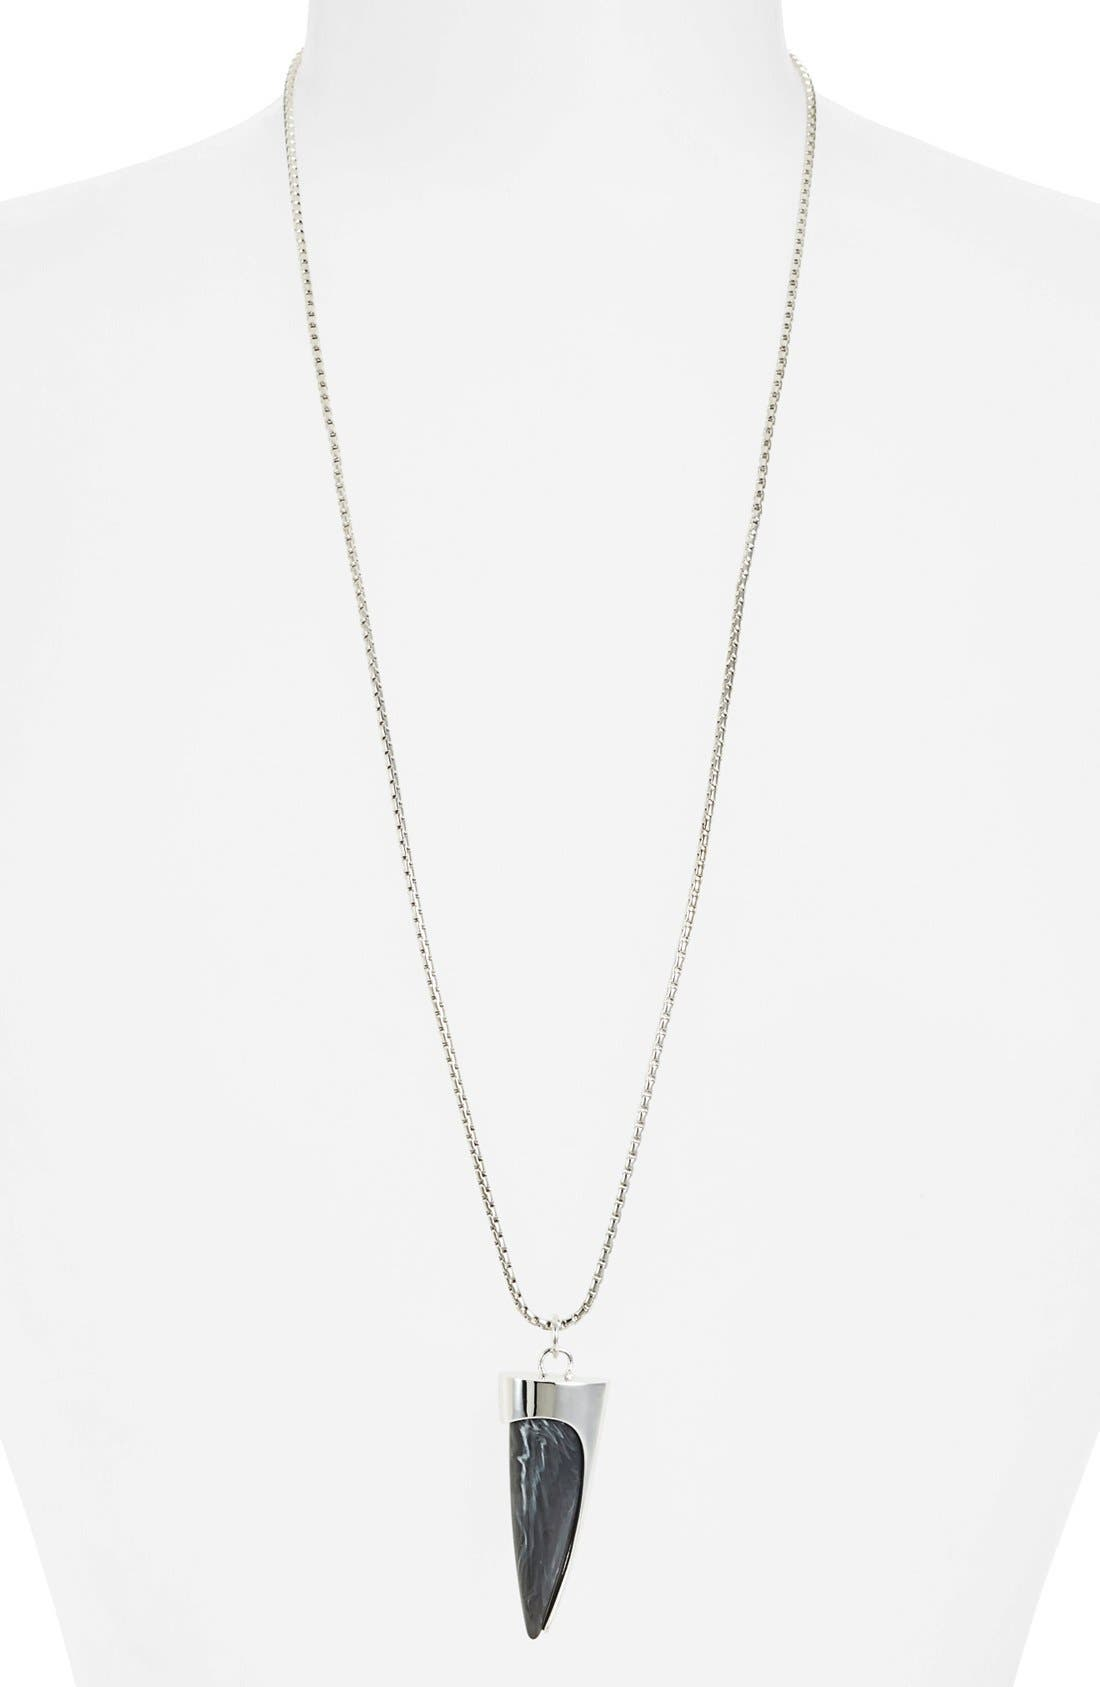 Main Image - Vince Camuto 'Thorns & Horns' Pendant Necklace